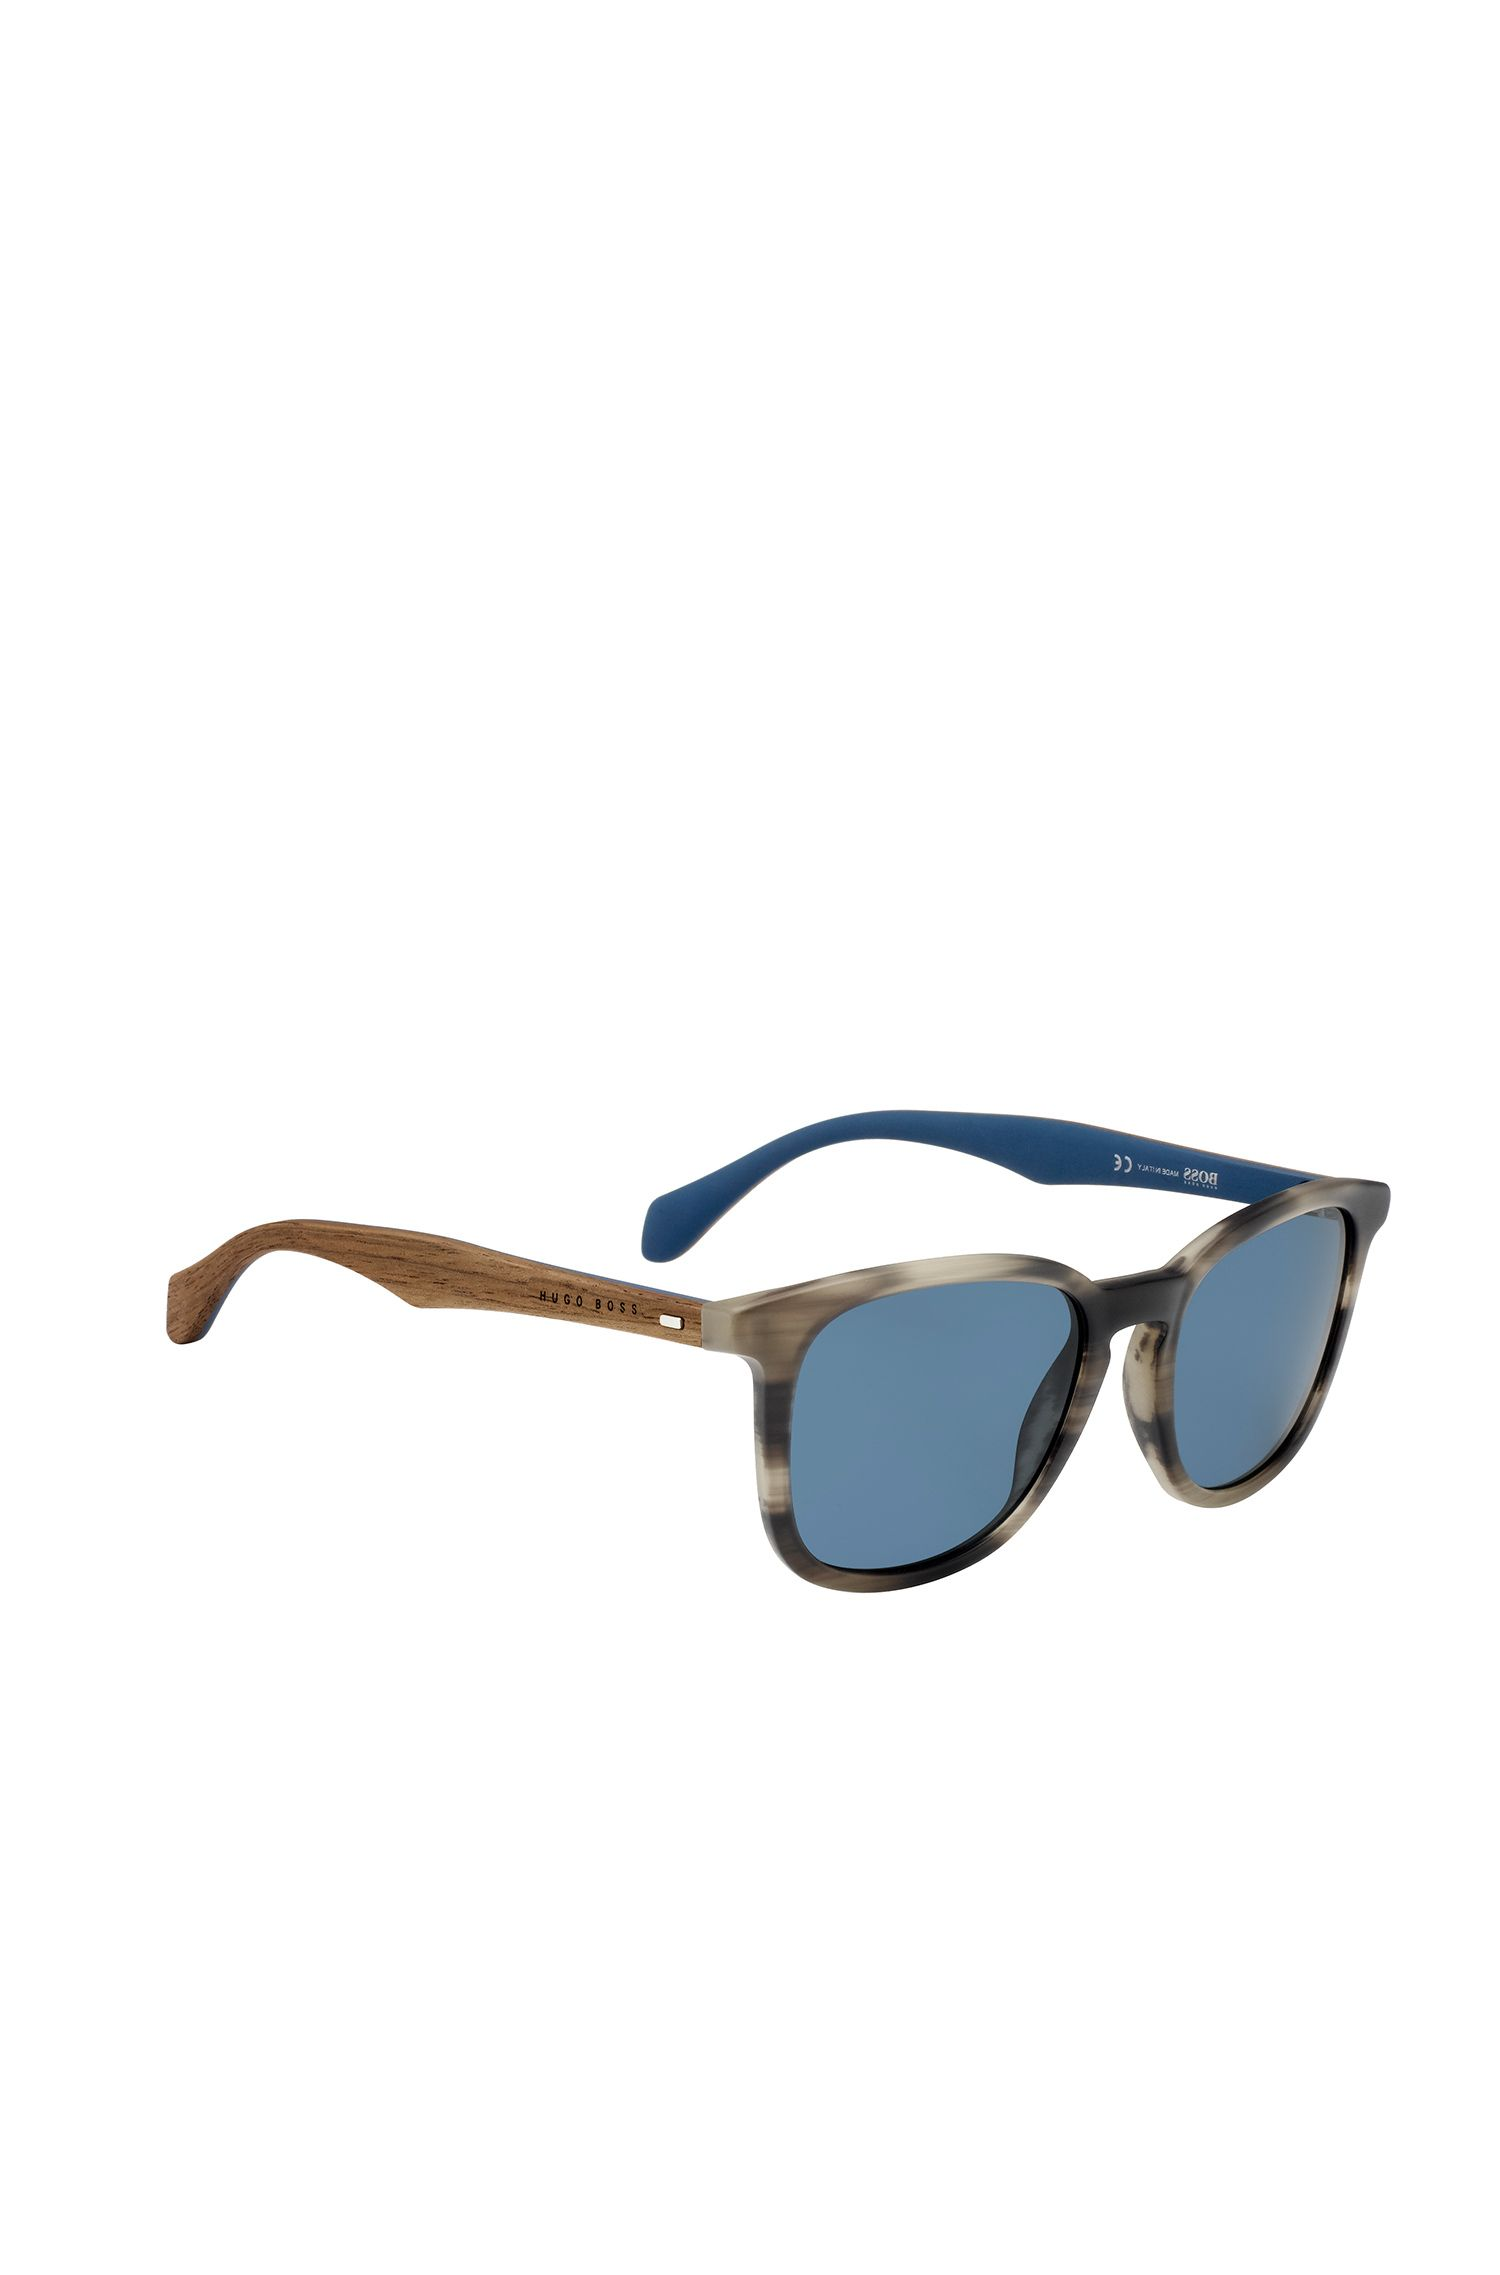 Wood Acetate Round Sunglasses | BOSS 0843S, Assorted-Pre-Pack